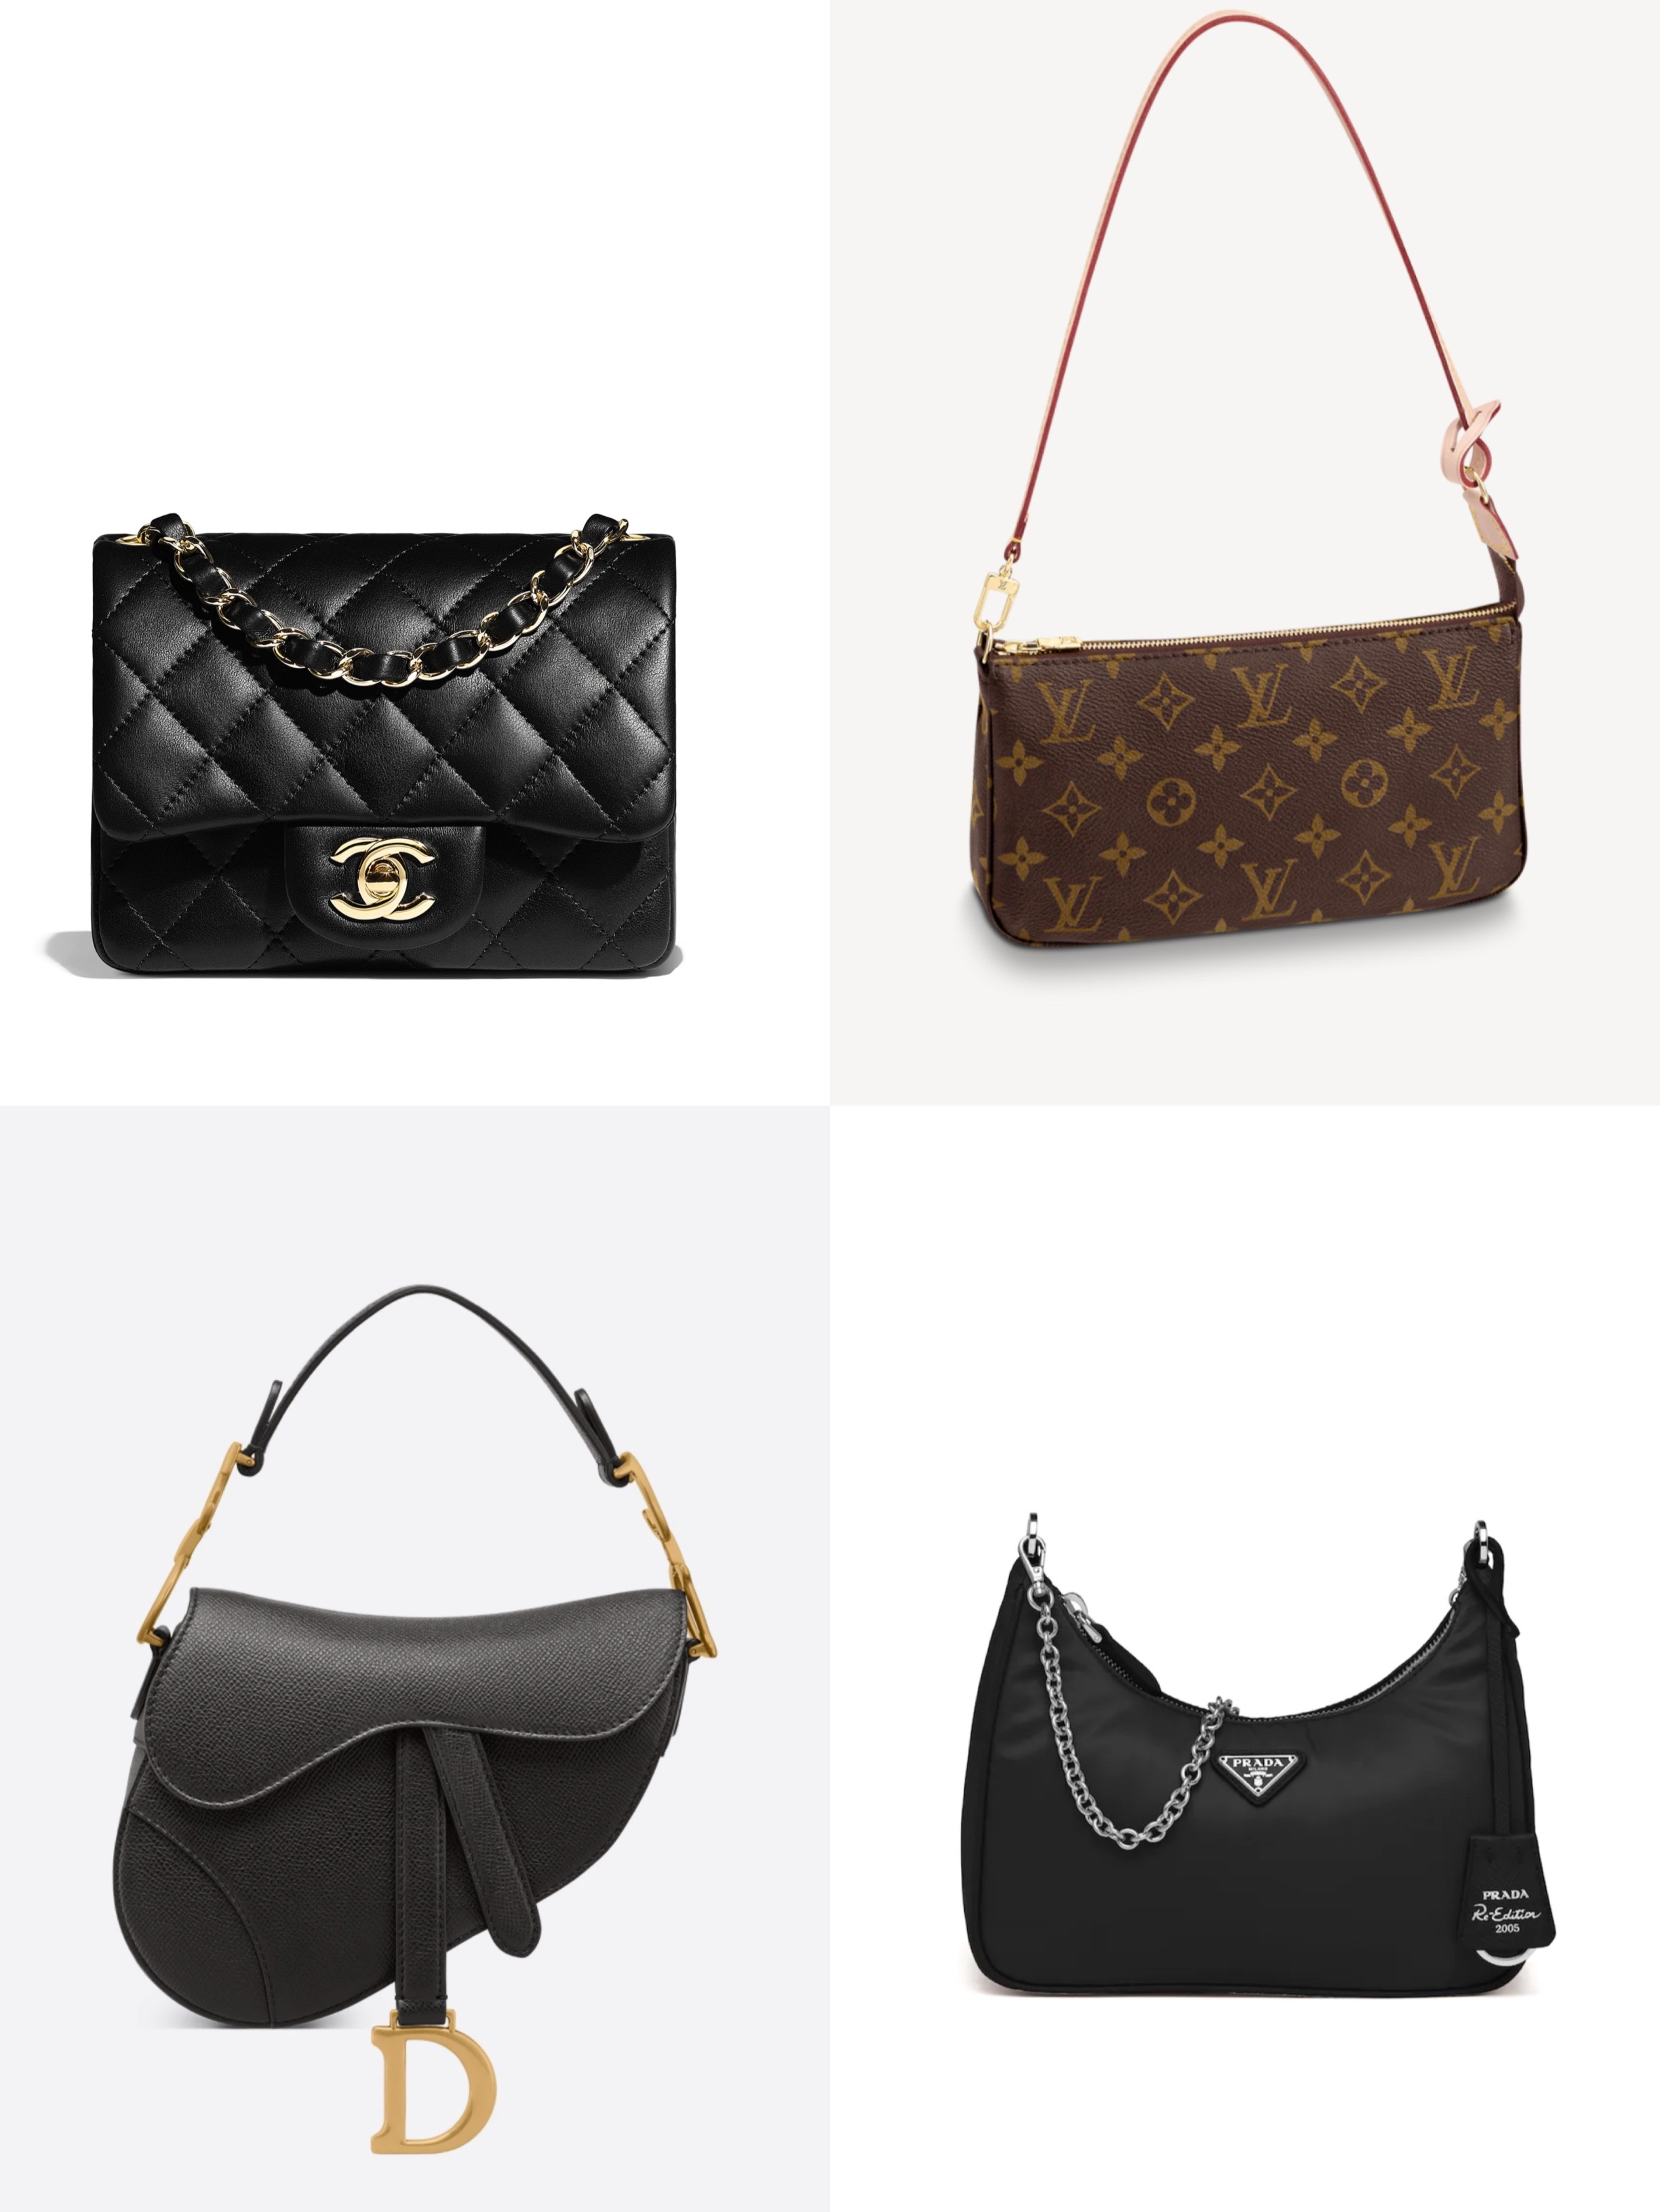 Chanel's Mini Square Classic Flap, Louis Vuitton's Pochette Accessories, Dior's Mini Saddle, and Prada's Re-Edition 2005 are among some of the bags with the highest price hikes in China throughout 2020.